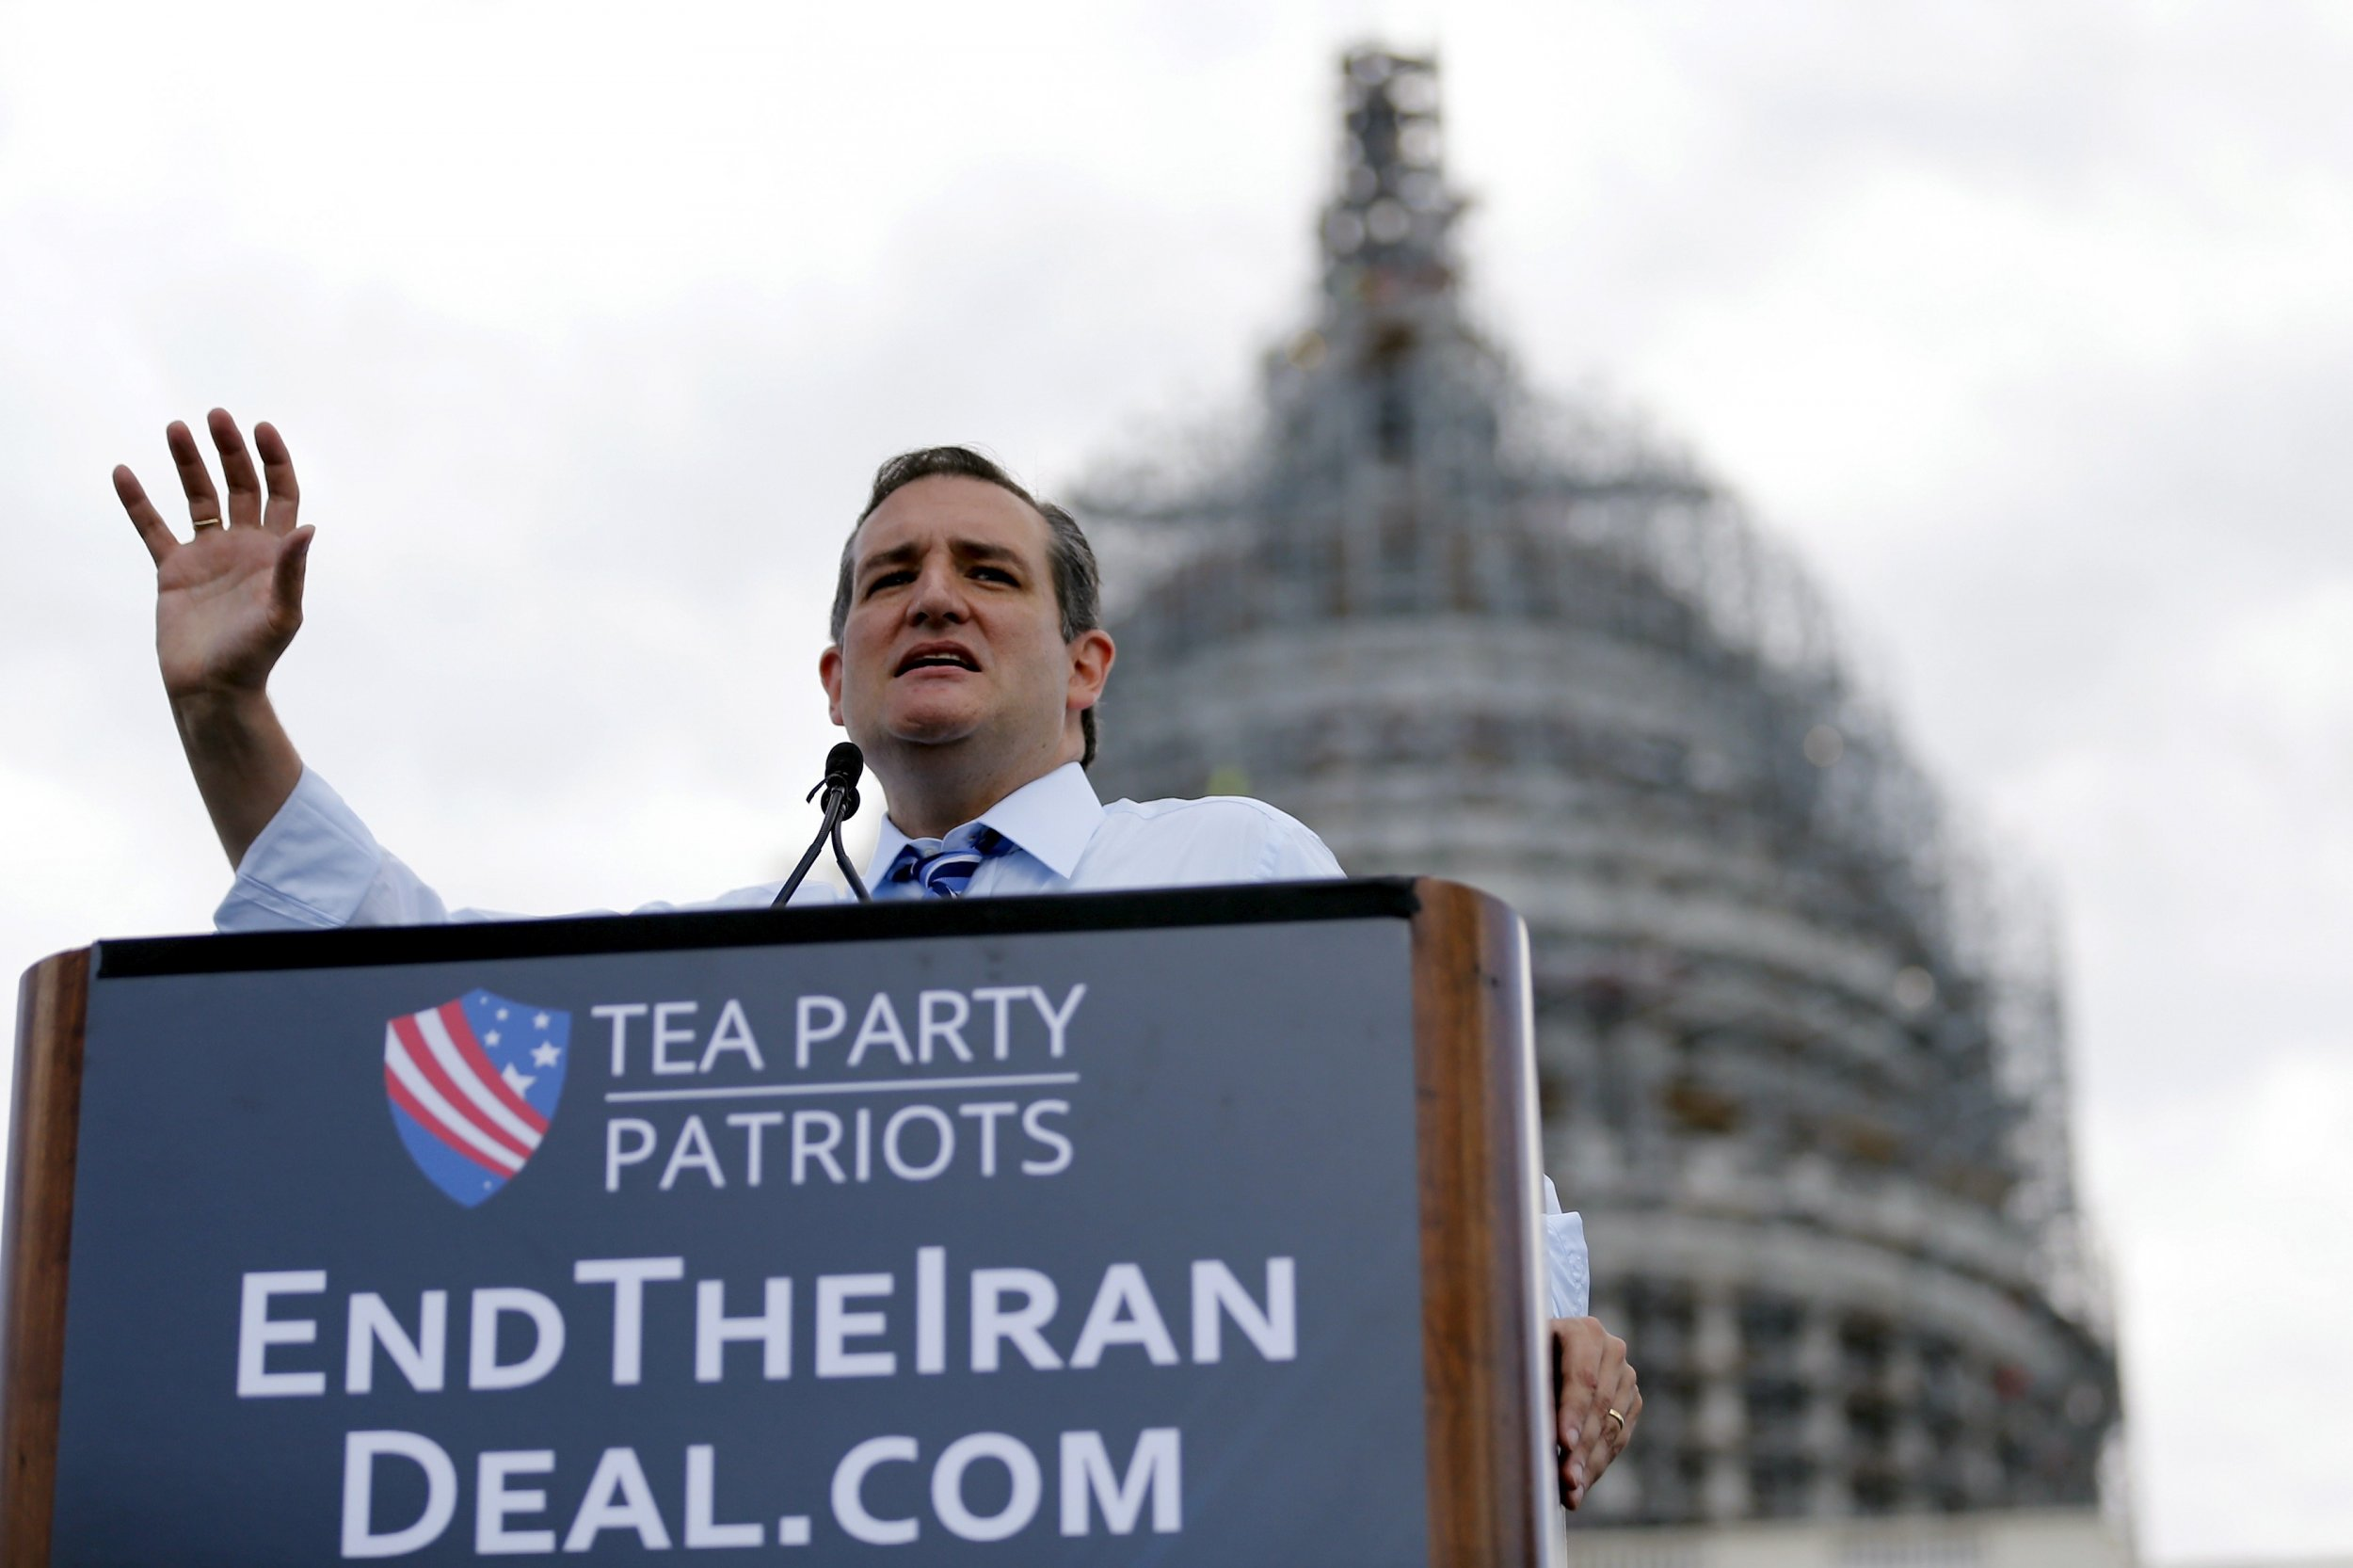 1026_Tea_Party_support_low_01